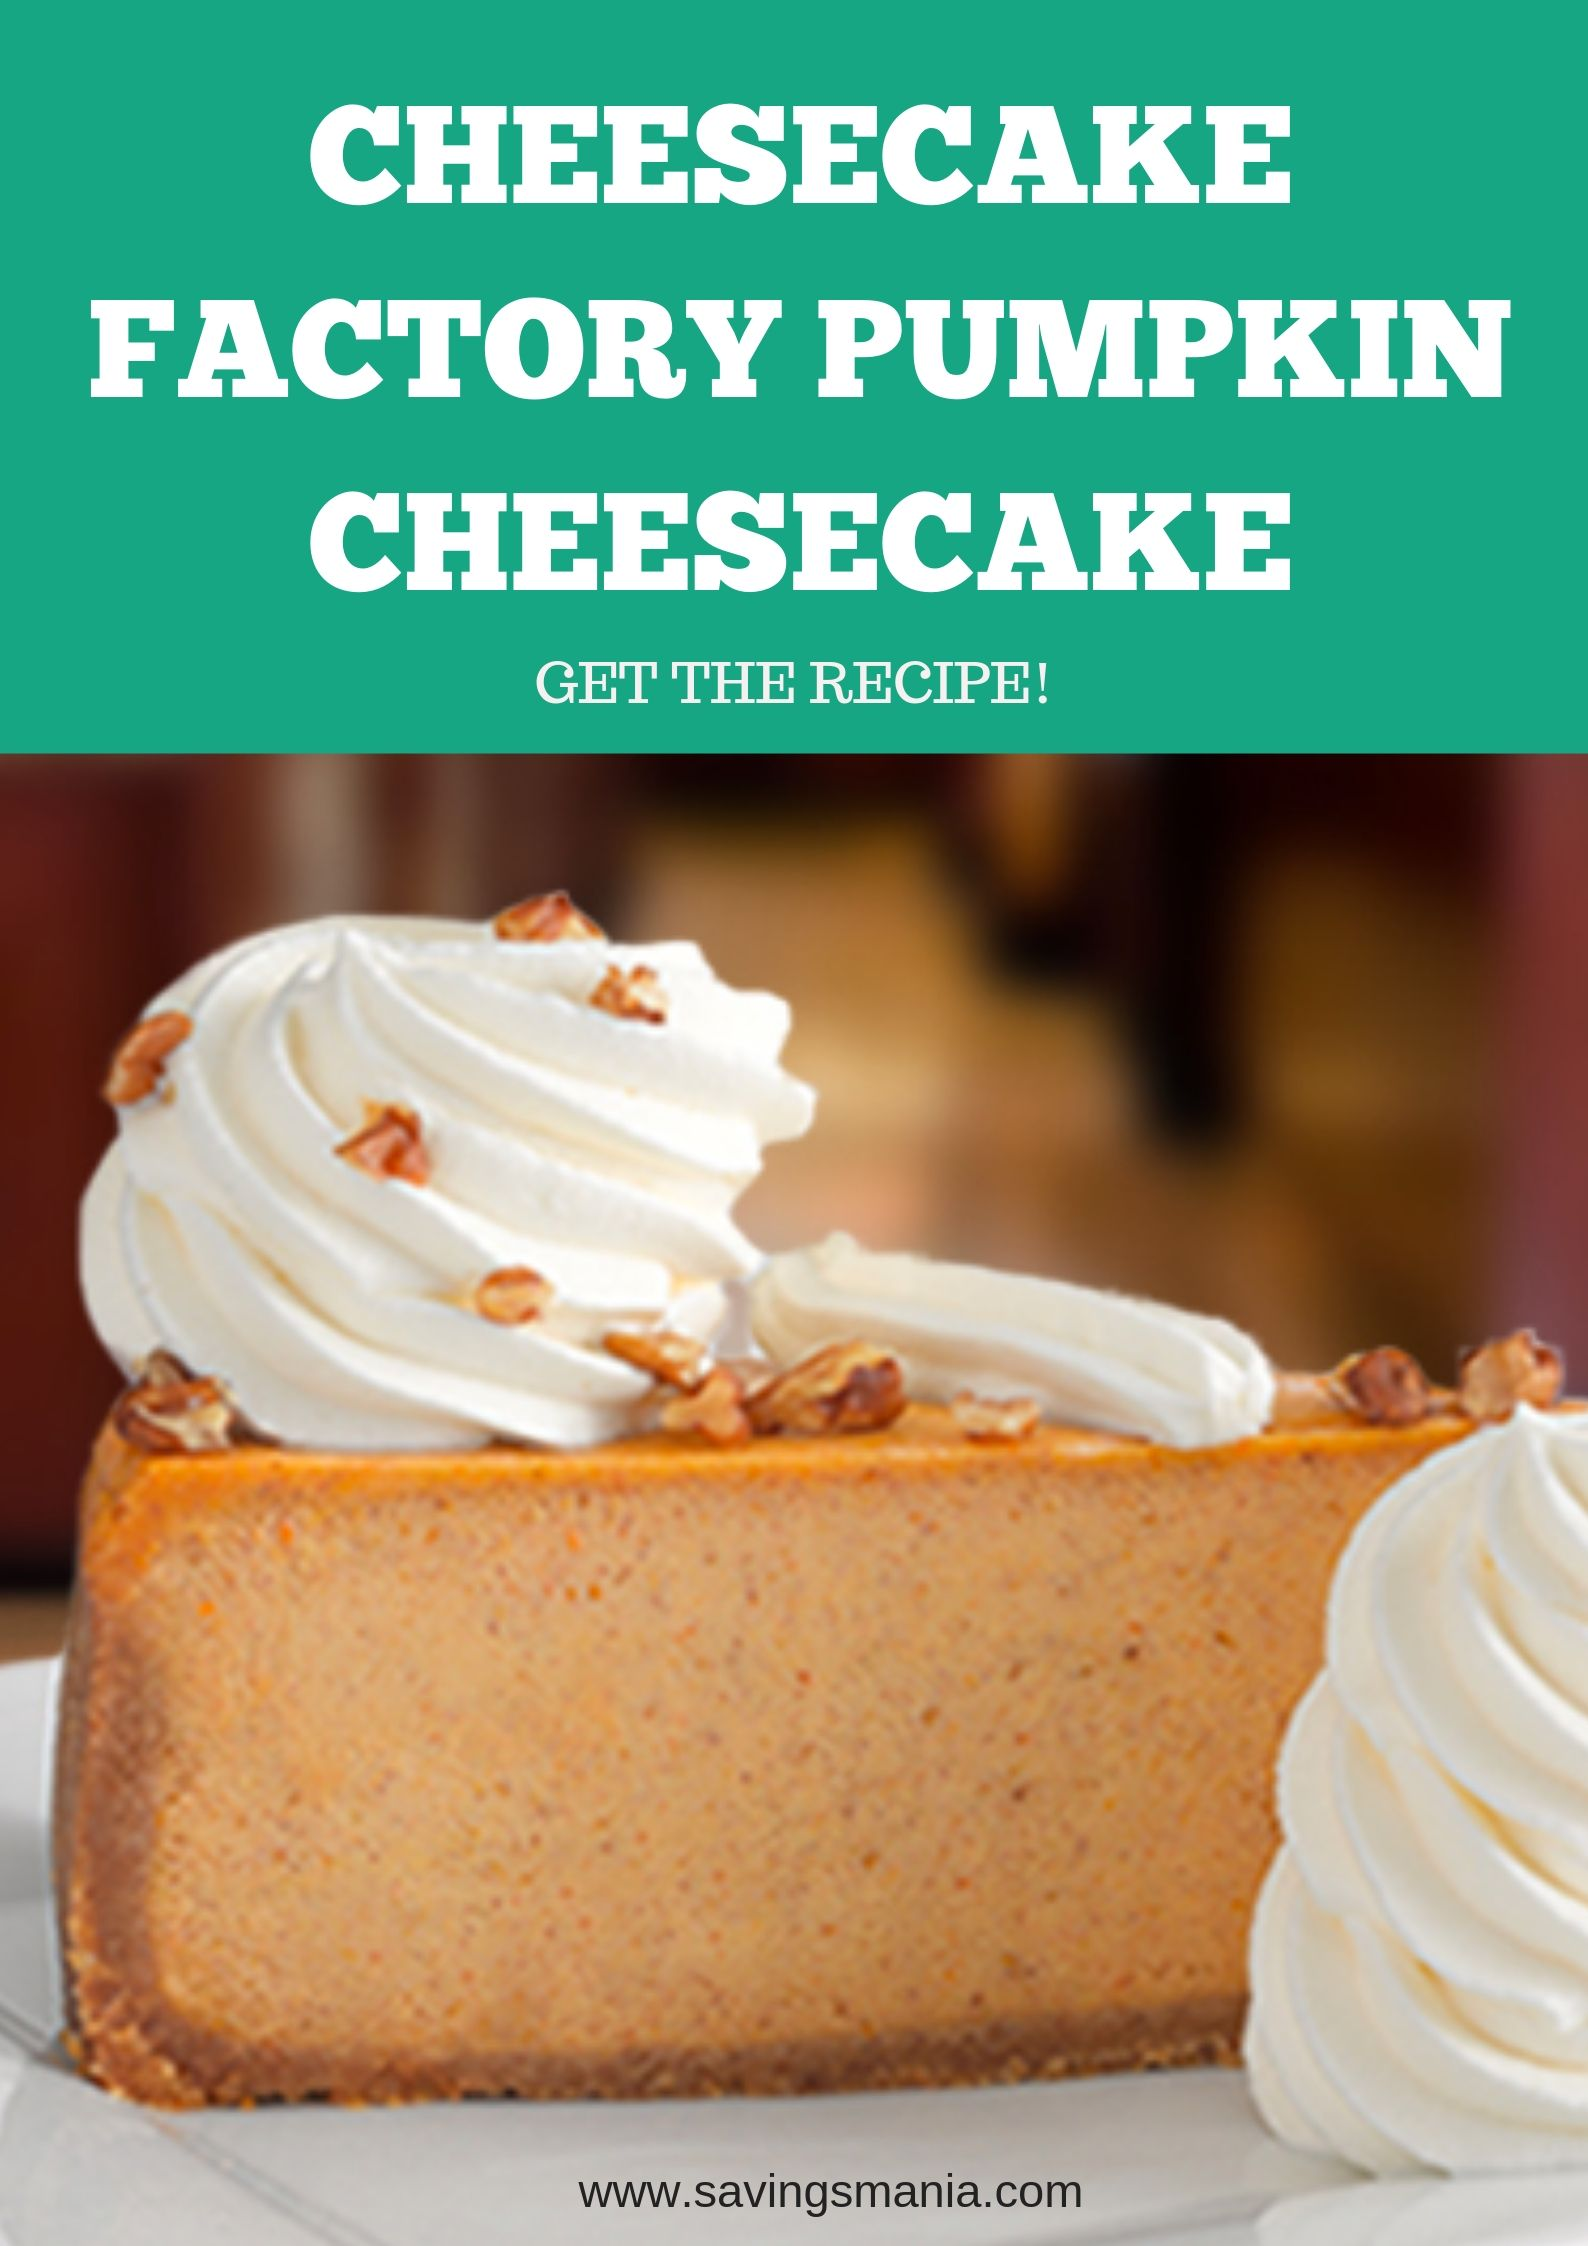 Cheesecake Factory Pumpkin Cheesecake Copycat Recipe Recipes Savingsmania